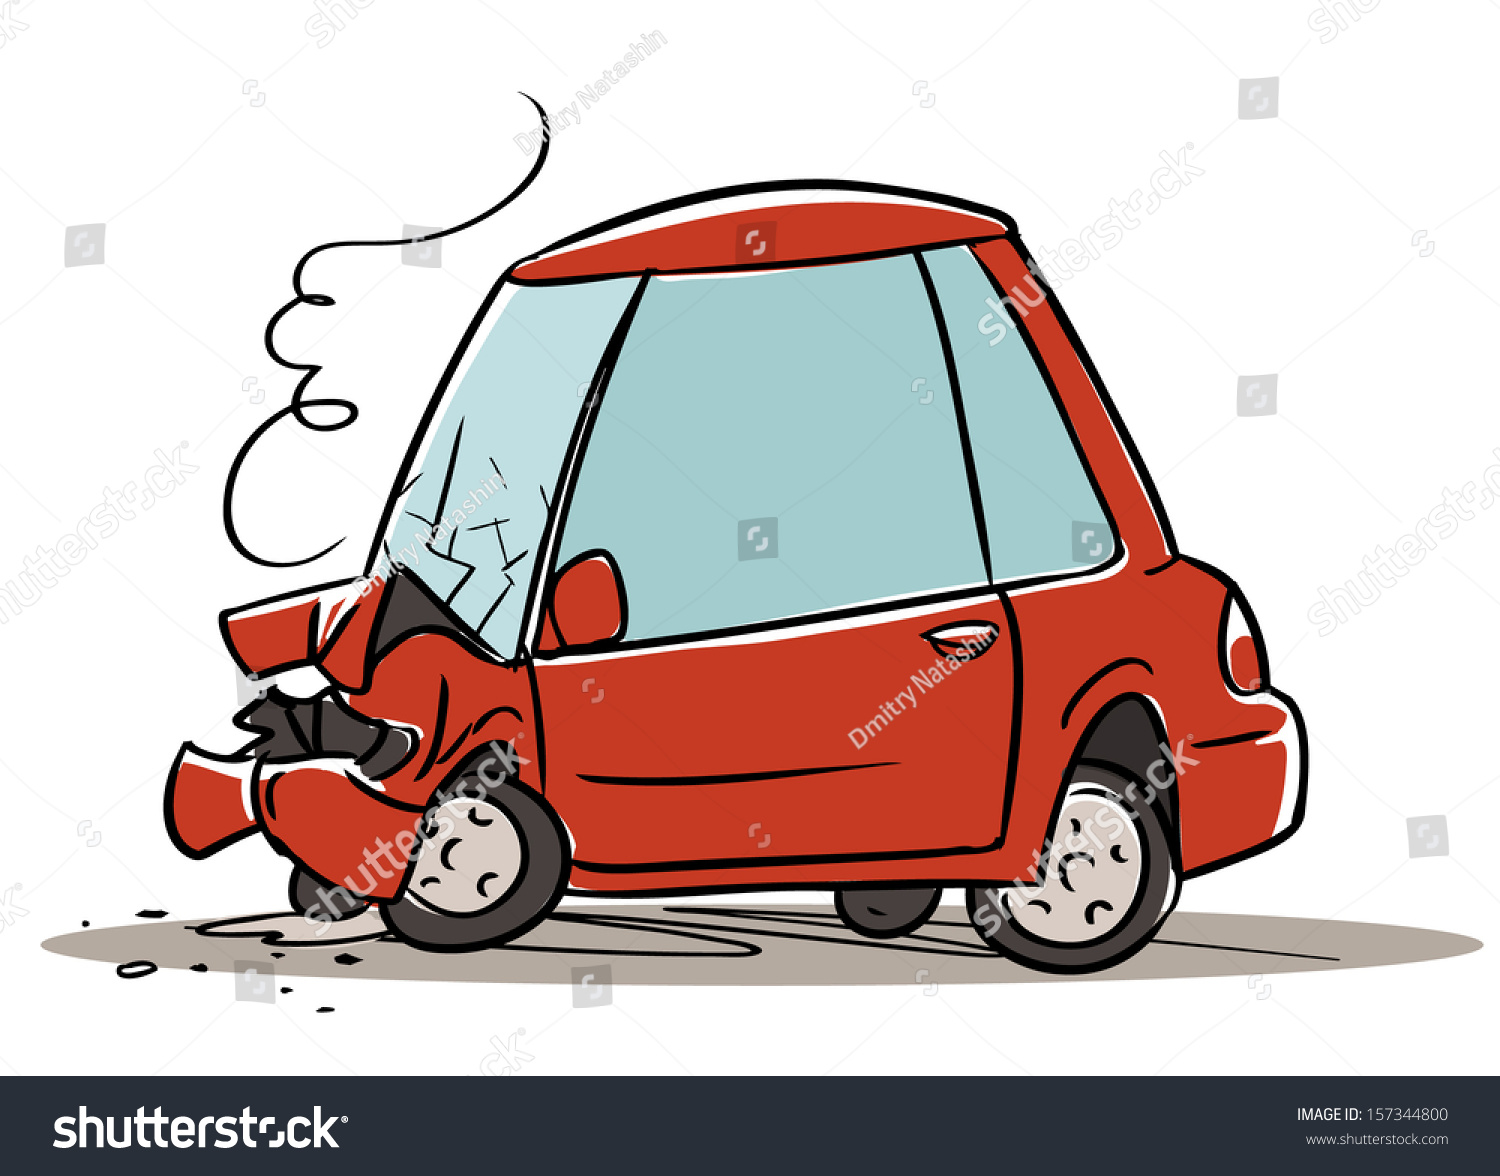 Car Crash Cartoon Illustration Isolated On Stock Vector (Royalty ...